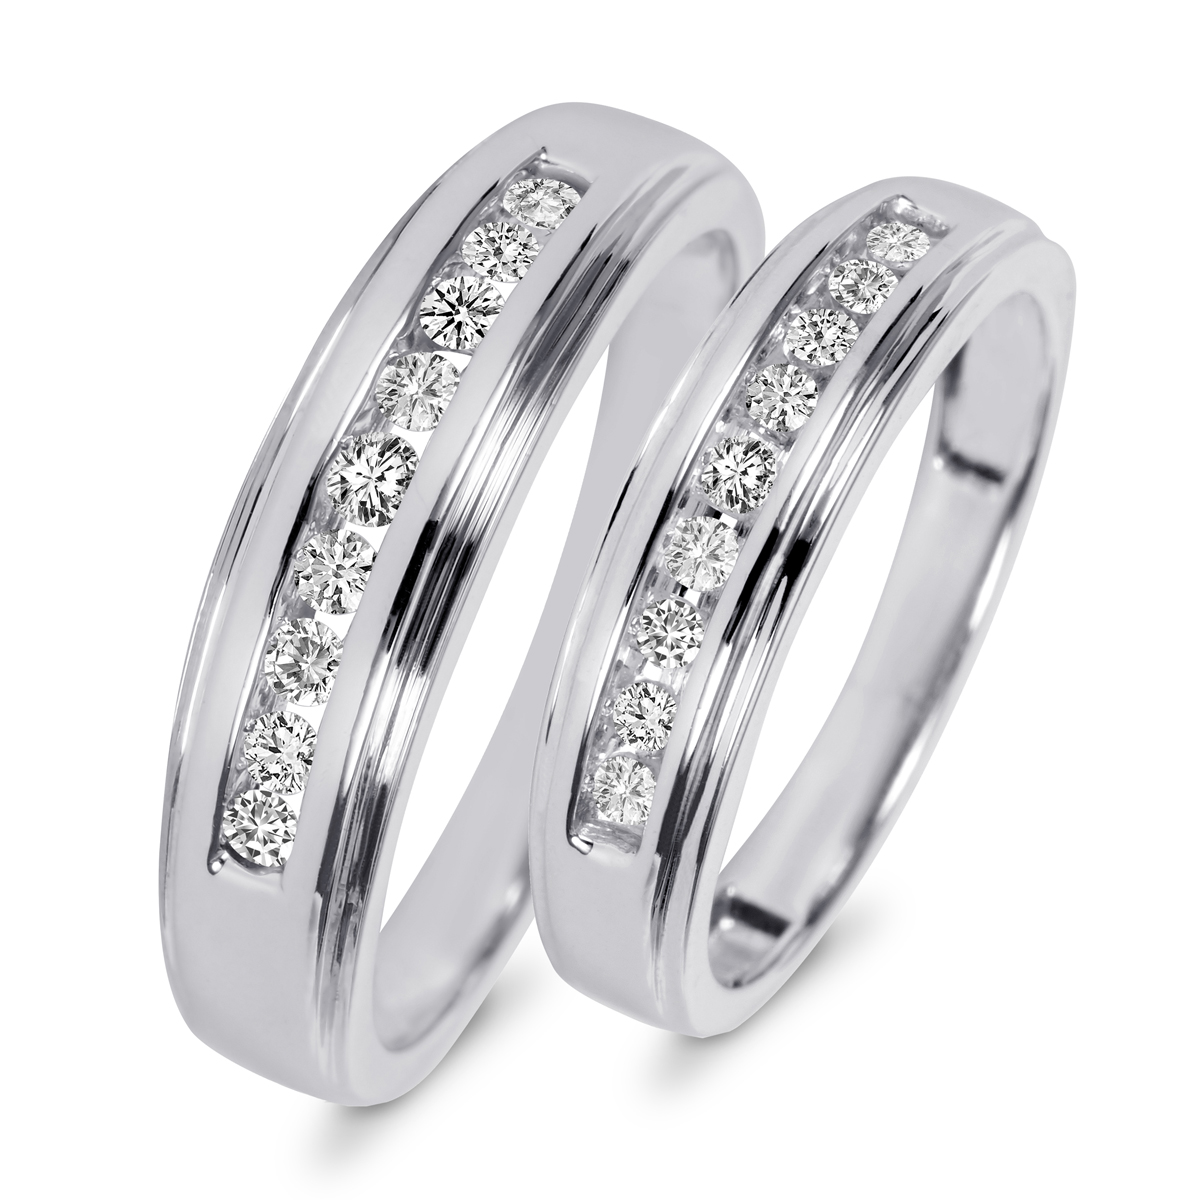 3 8 carat t w diamond his and hers wedding band set 10k